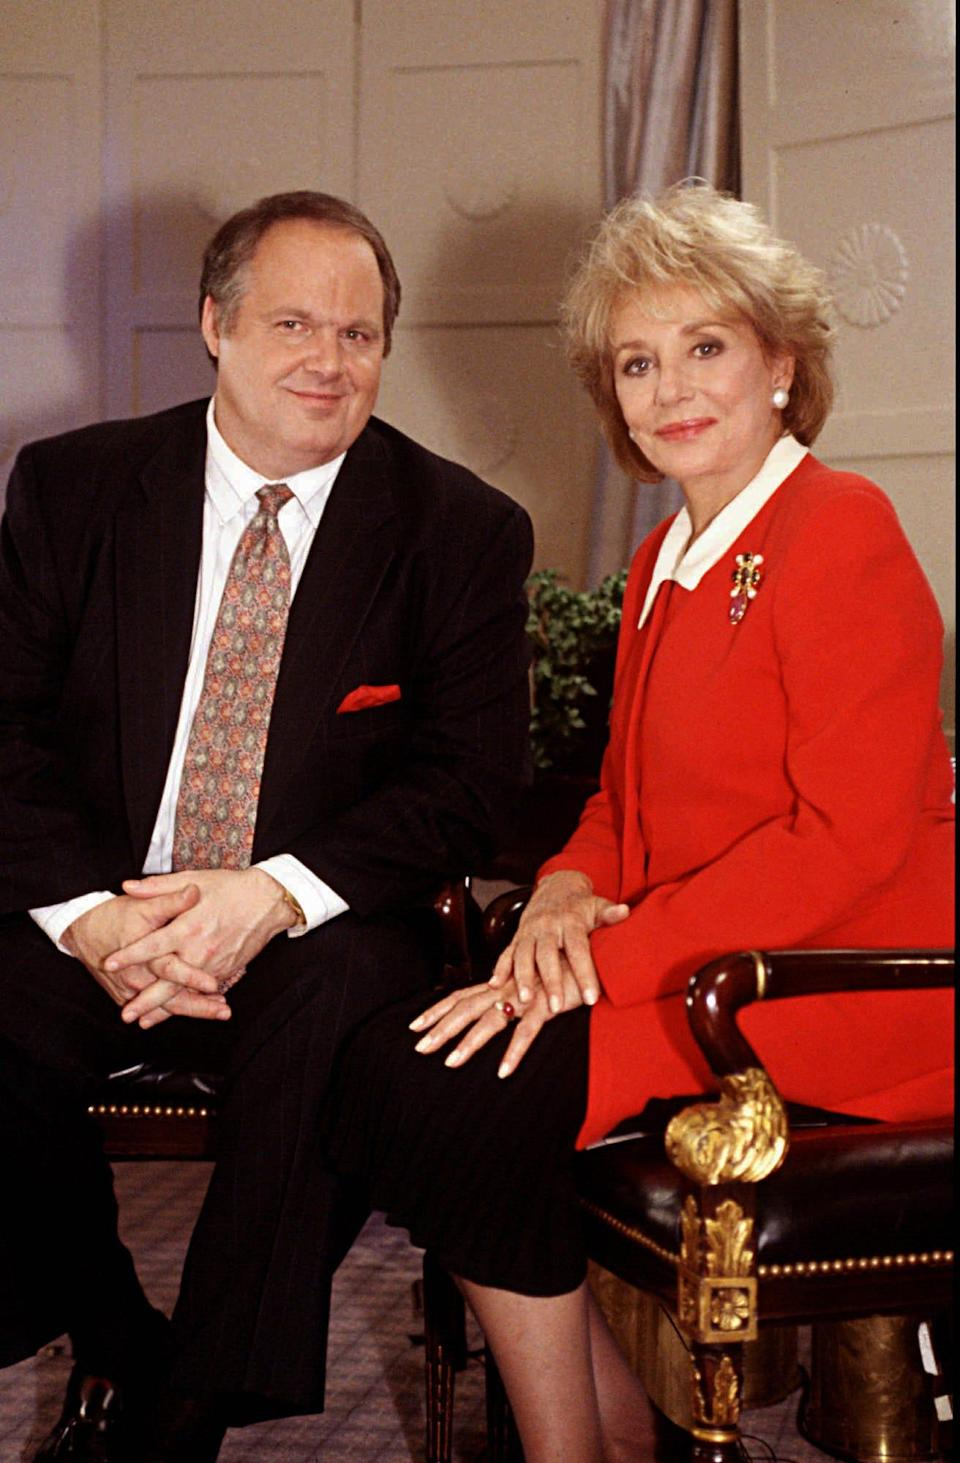 """Rush Limbaugh talks to Barbara Walters about politics, women, his childhood, his father, his career, his marriages and the secret to his success on ABC News' """"20/20"""" Nov. 5, 1993."""